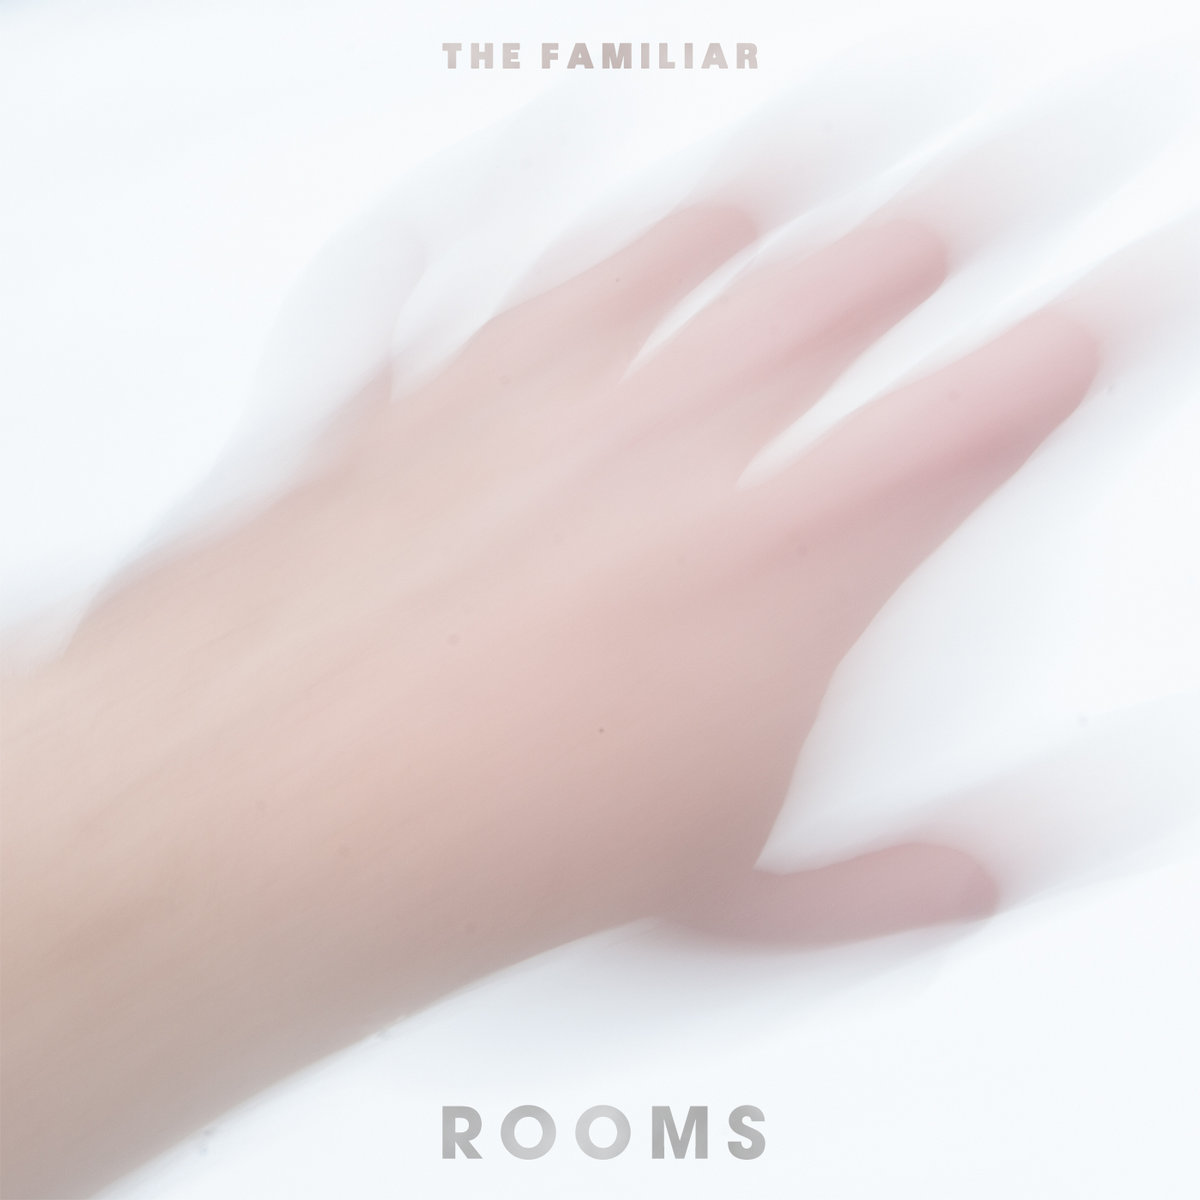 [Nice In The Headphones] Rooms EP – The Familiar